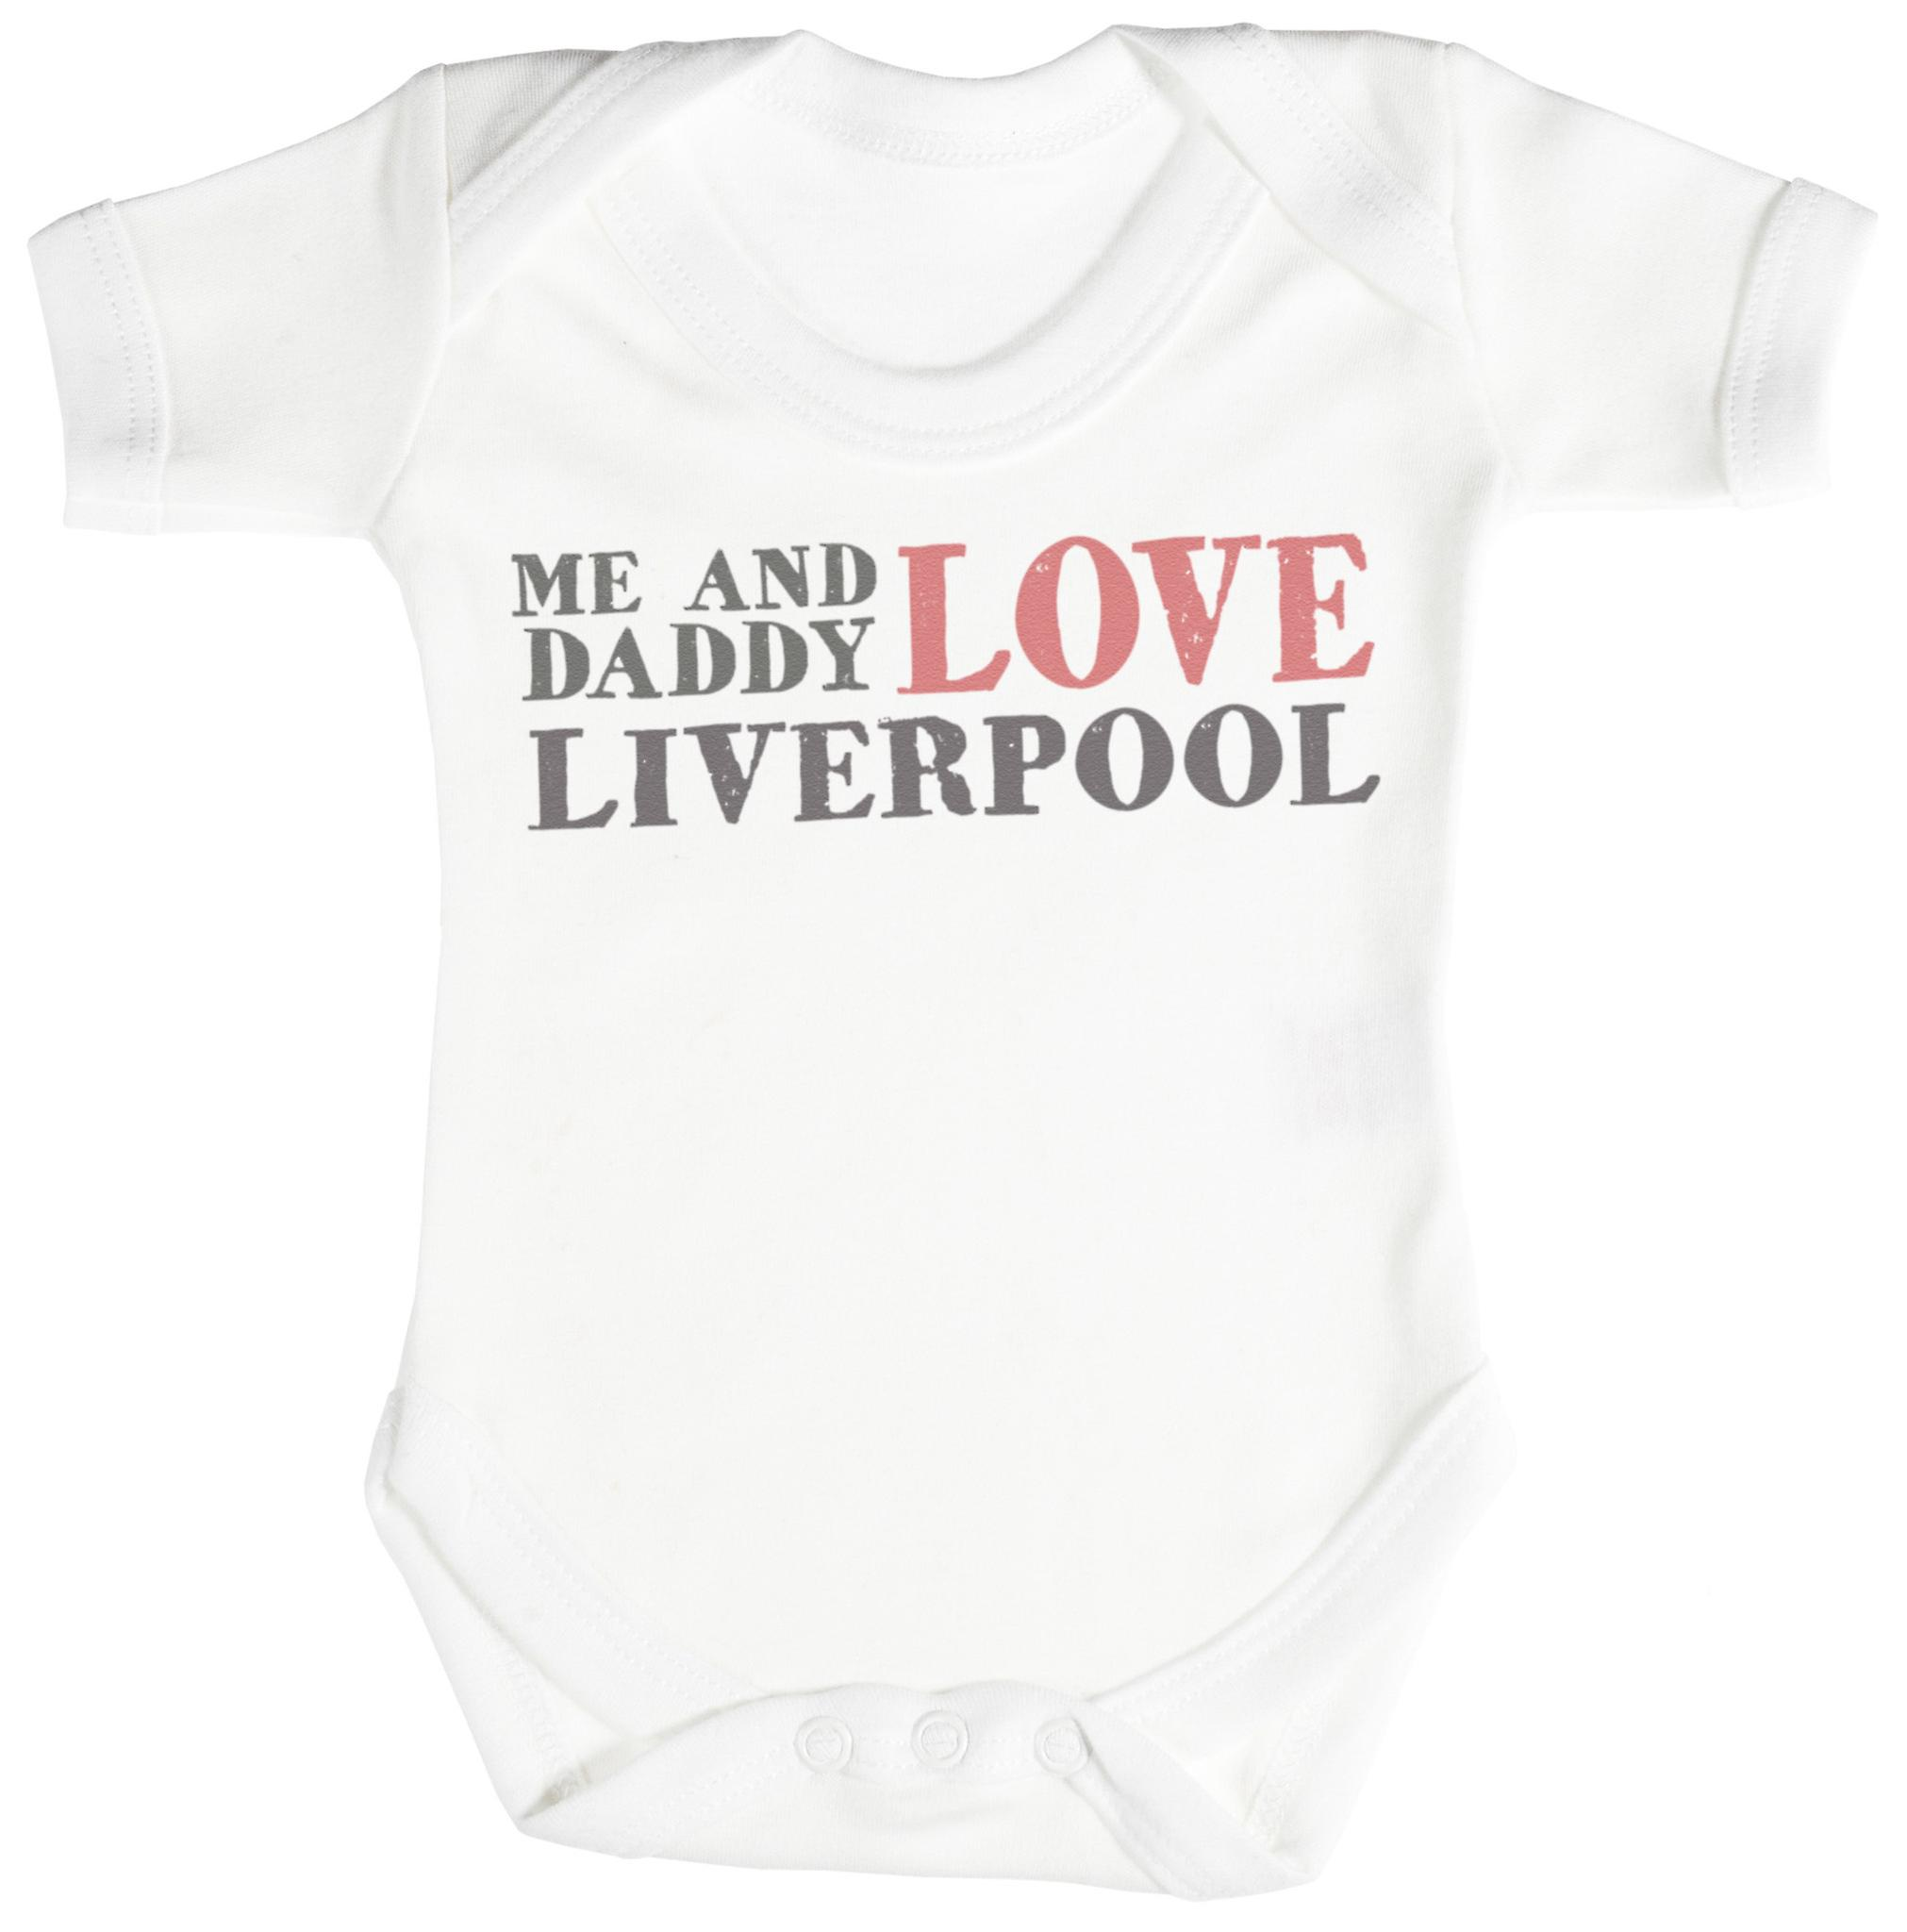 Me & Daddy Text Love Liverpool Baby Bodysuit Babygrow